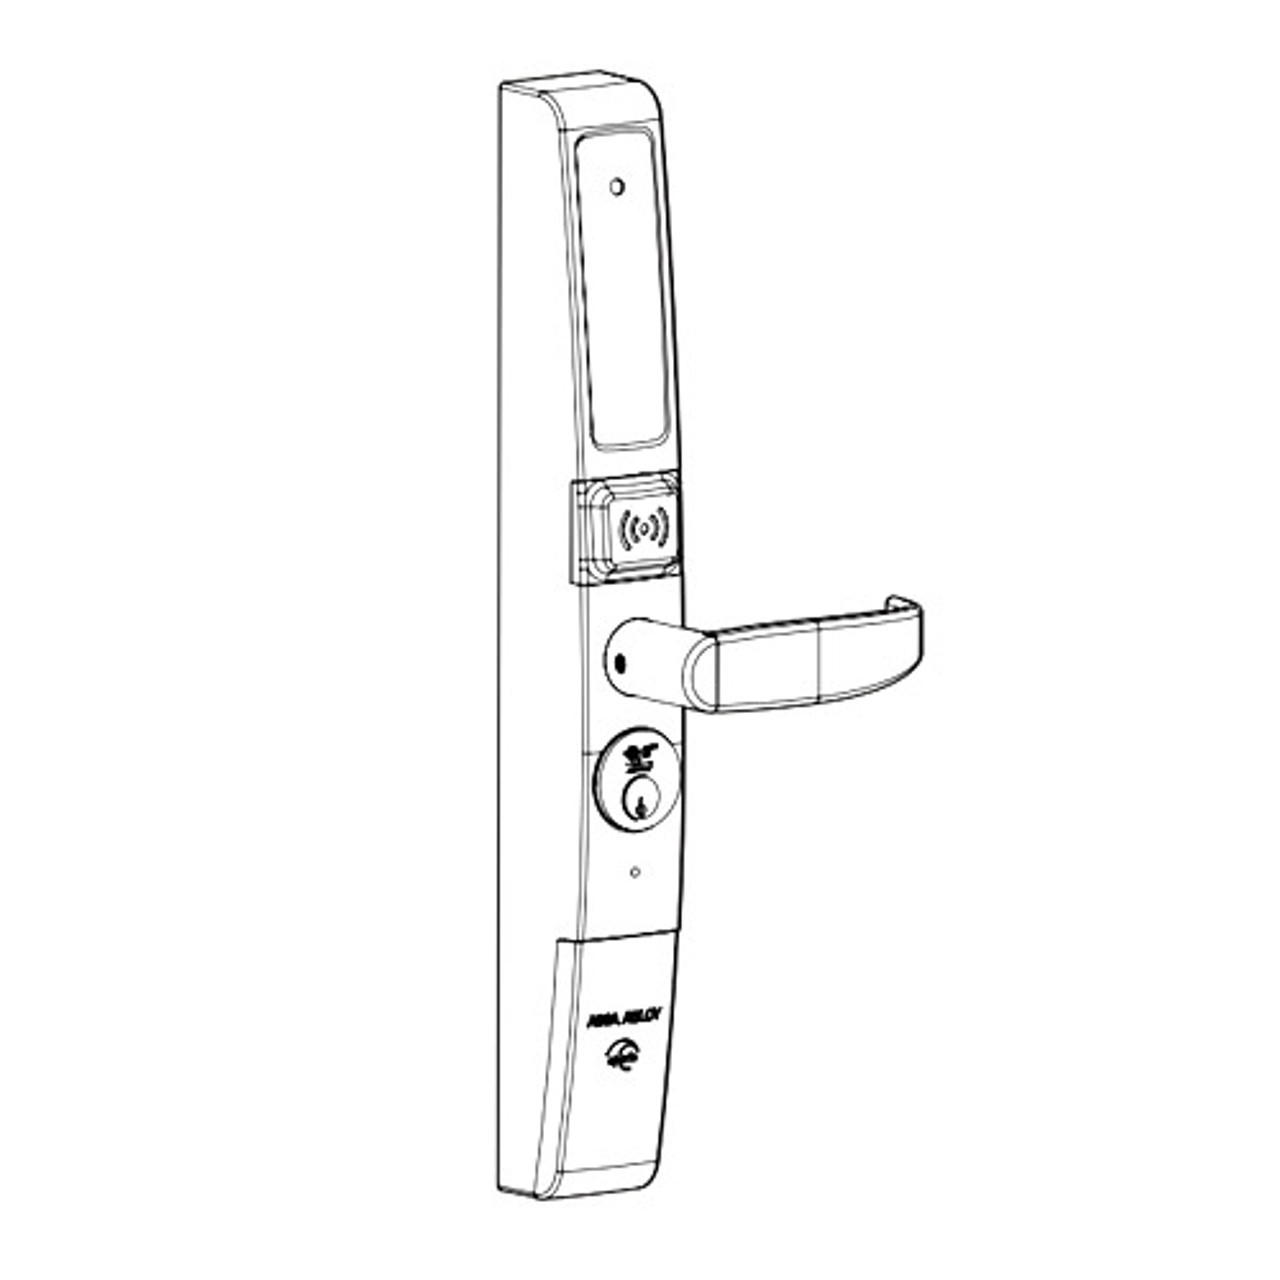 A100-3090H-P-01-121 Adams Rite Keyless Entry and Aperio Hub Wholesale Kit with Prox Reader for Deadlatches